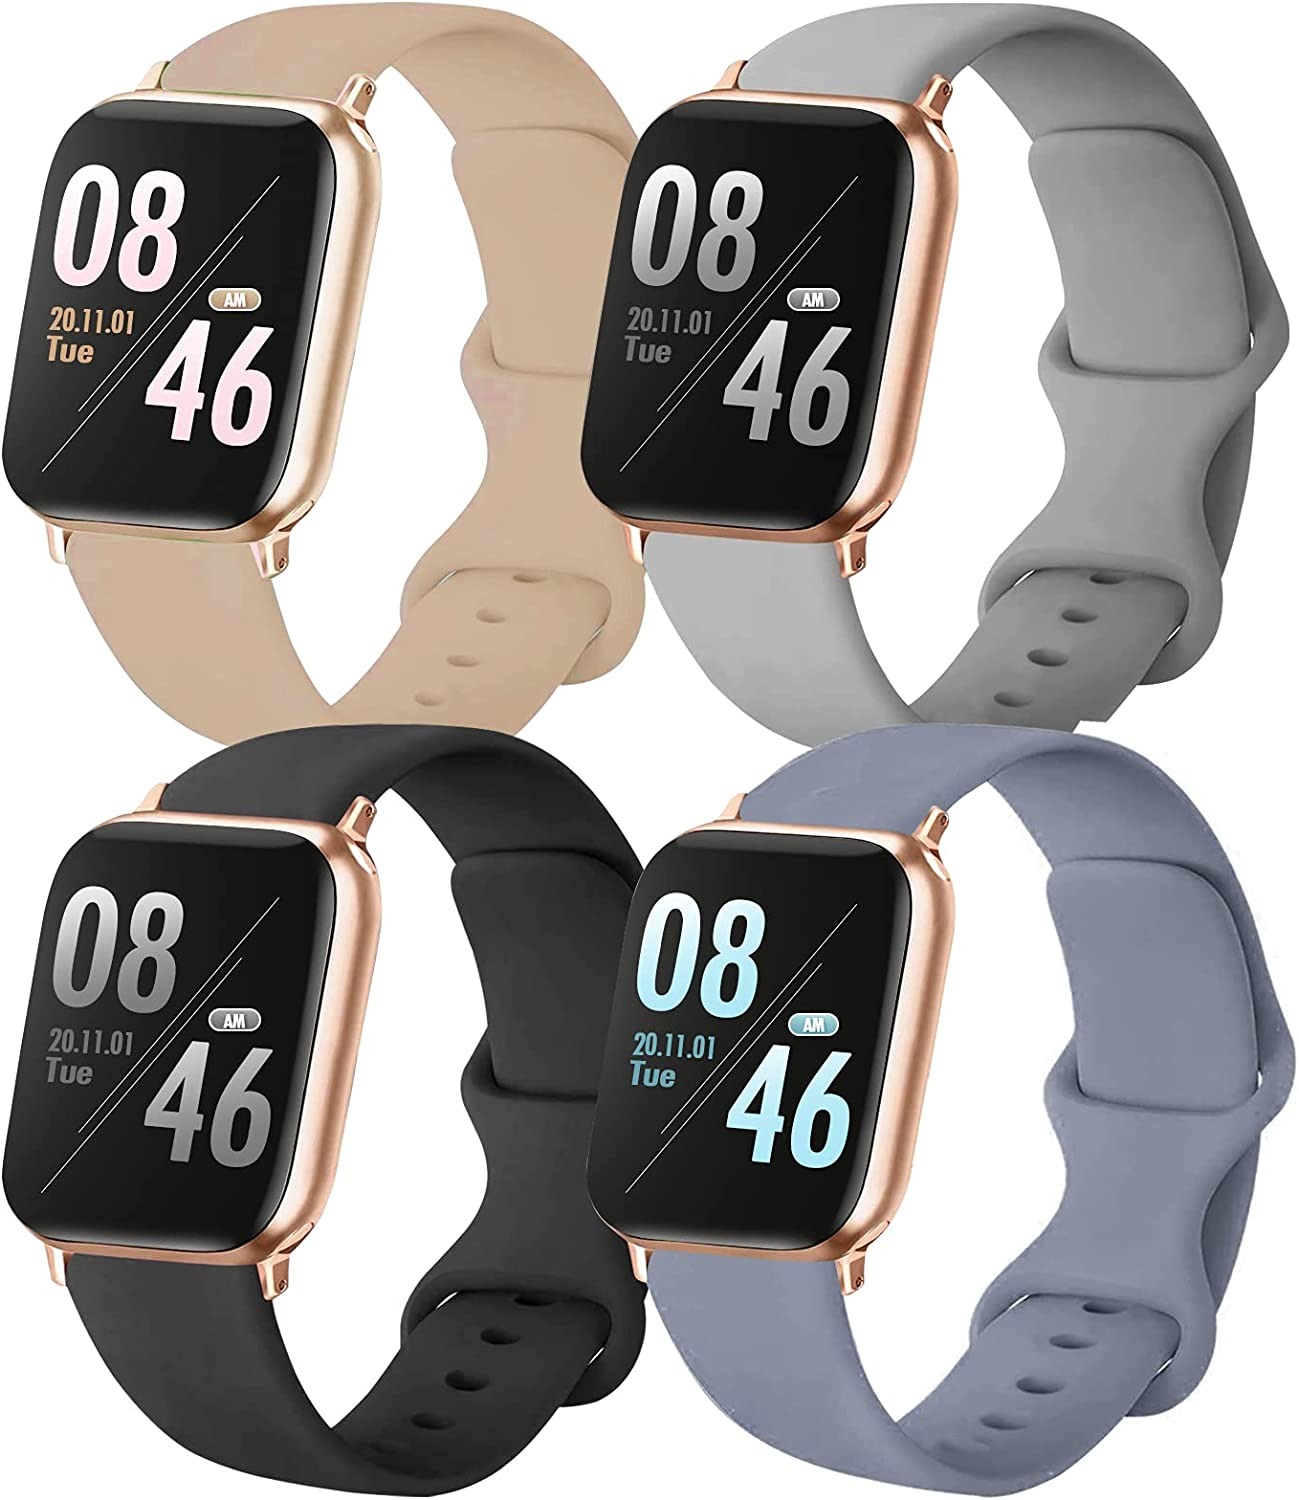 Brigtlaiff Pack 4 Compatible with 38mm 40mm 42mm 44mm Apple Watch Bands, Soft Silicone Replacement Watch Band for iWatch Series SE/6/5/4/3/2/1 (Black/Grey/Walnut/Lavender Gray, 42mm/44mm-M/L)